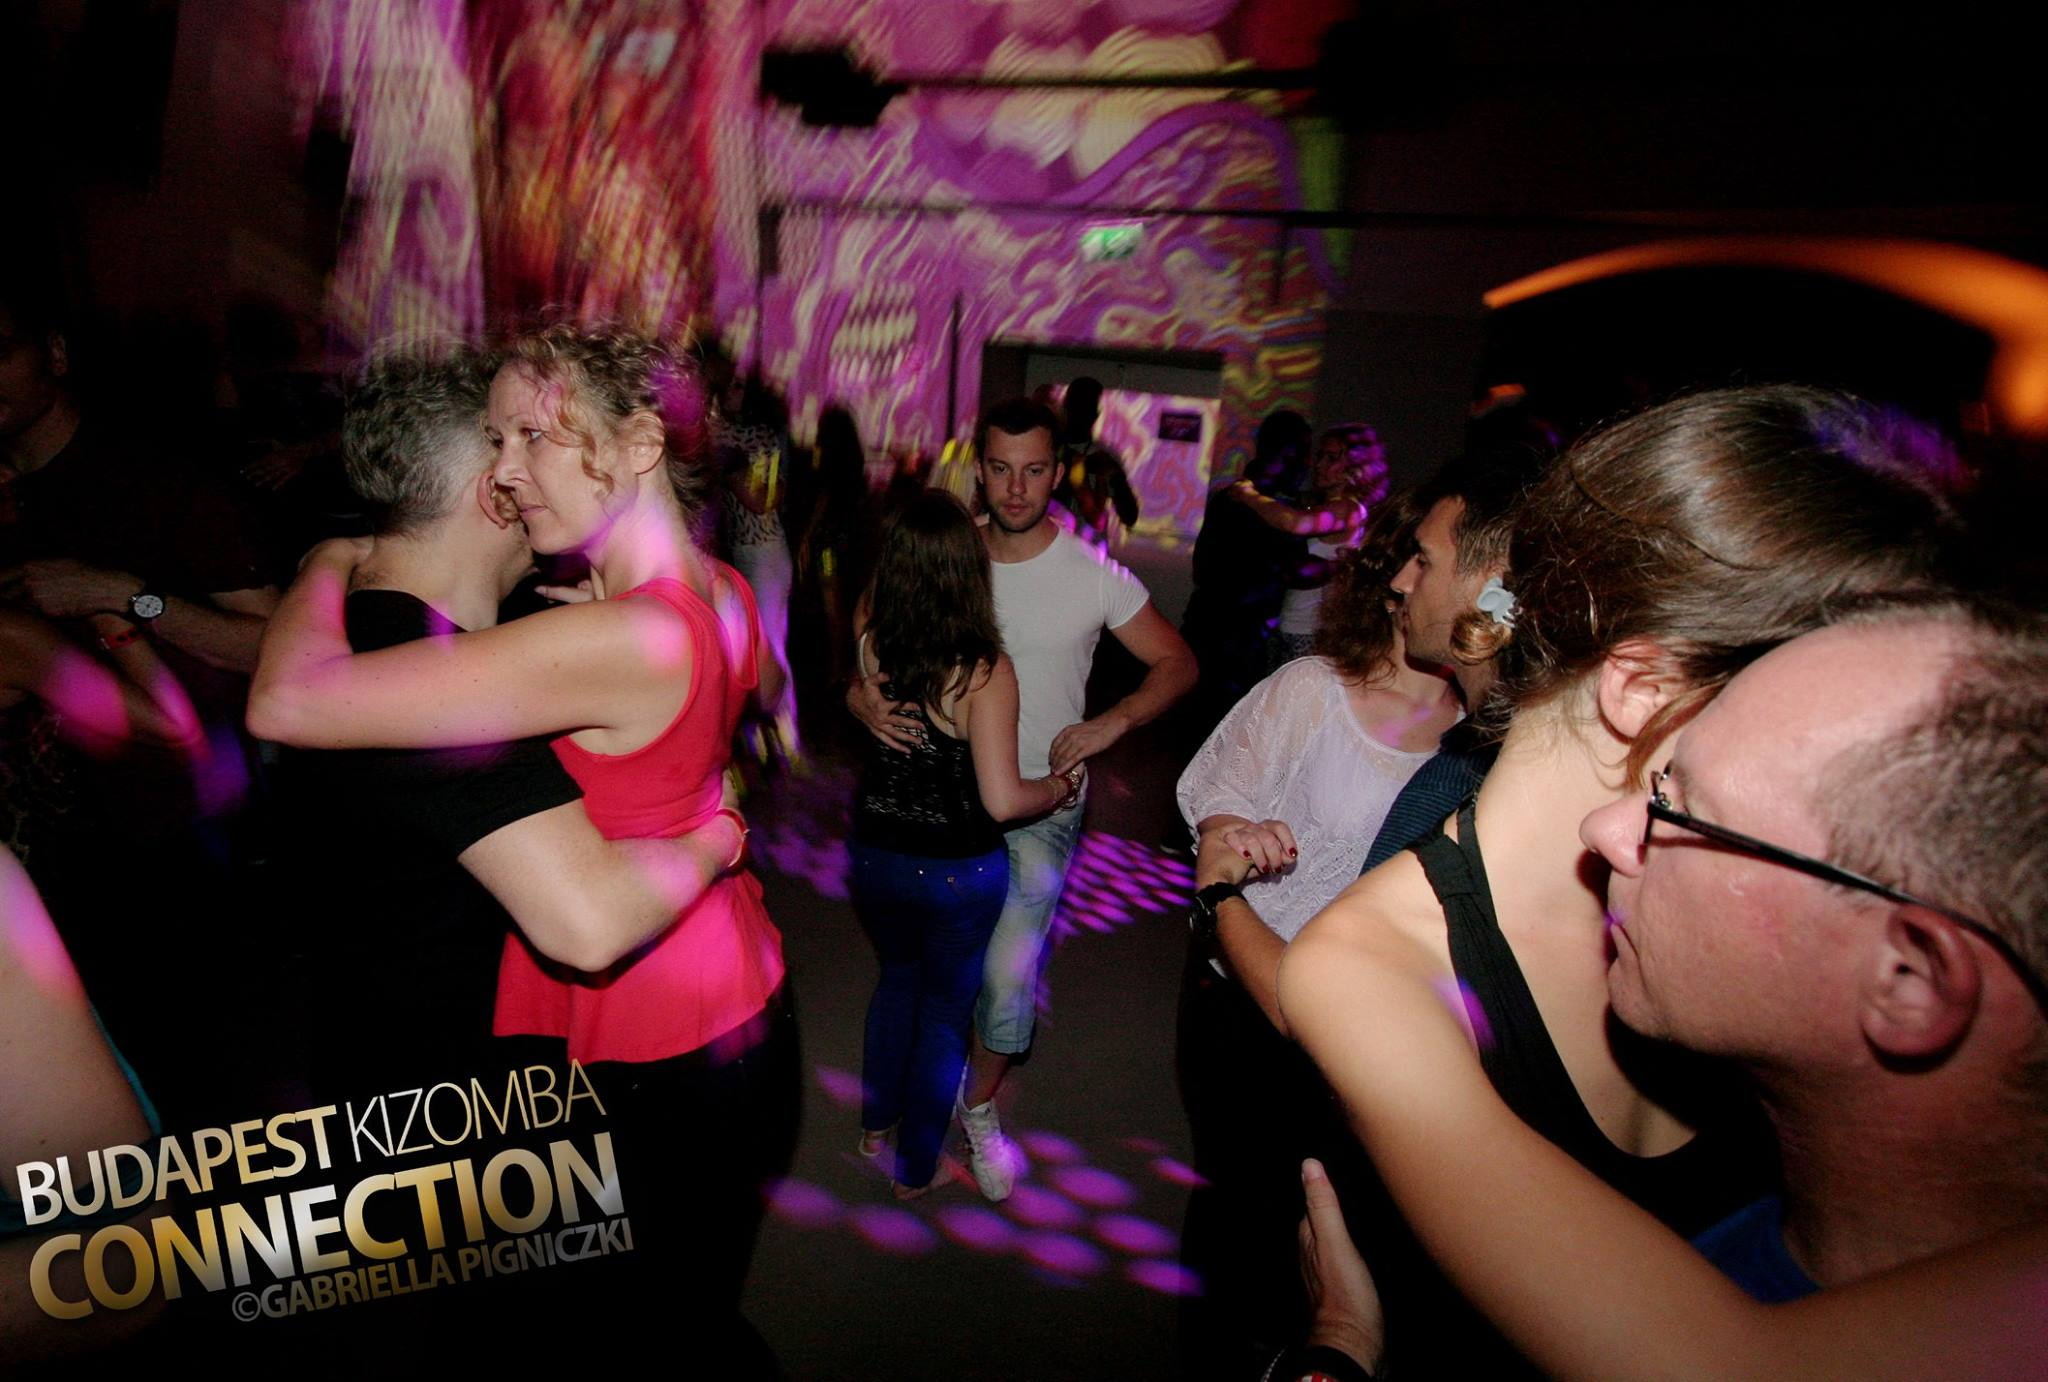 Couples dancing at the Budapest Kizomba Connection Festival, August 2015.  photo taken from the BKC Facebook page.